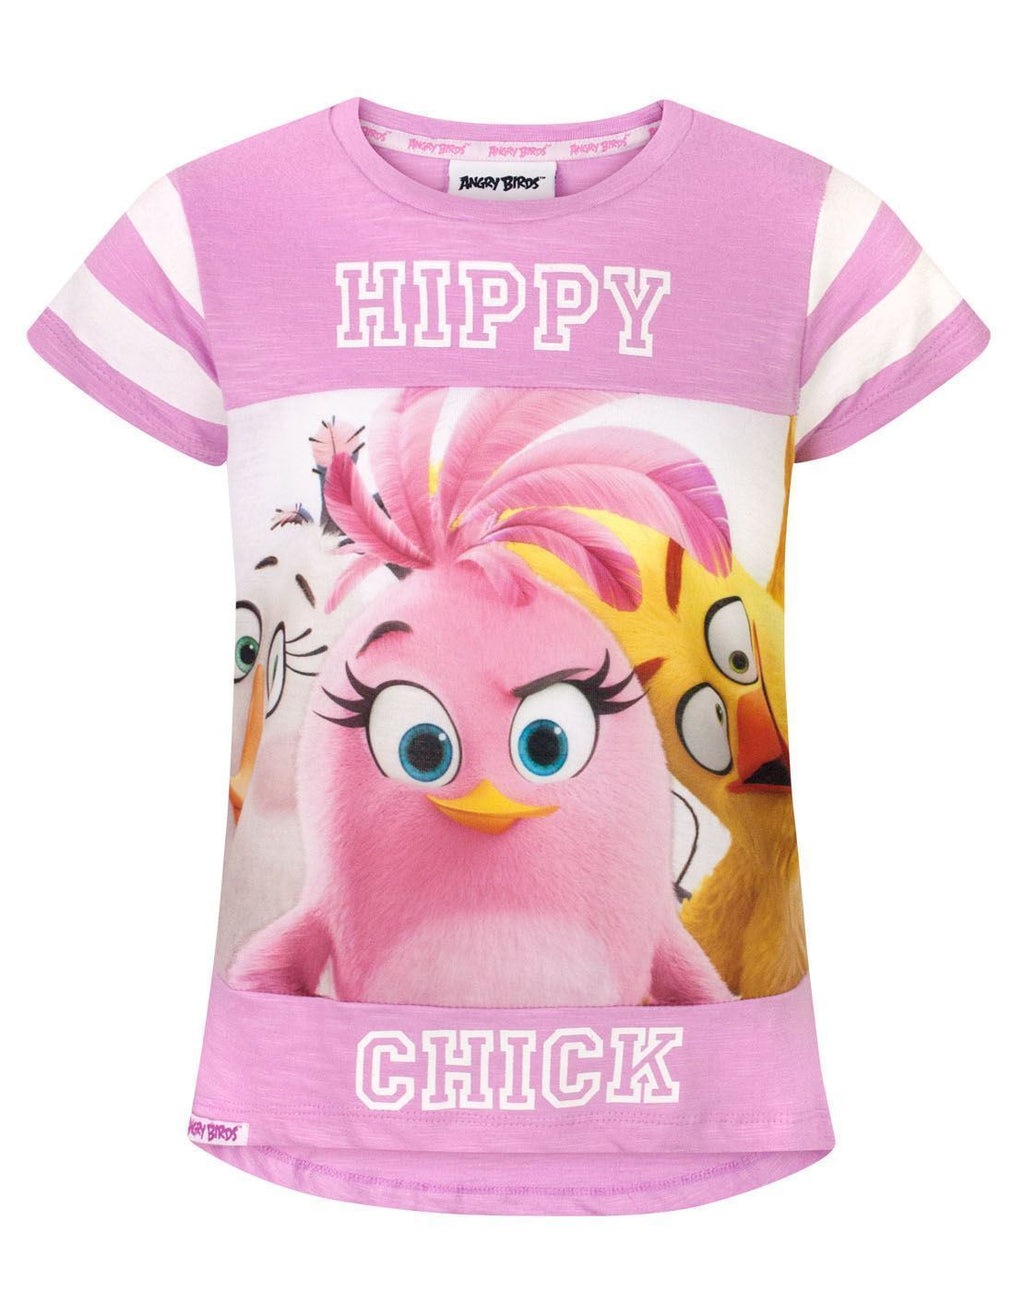 Angry Birds Hippy Chick Girl's T-Shirt